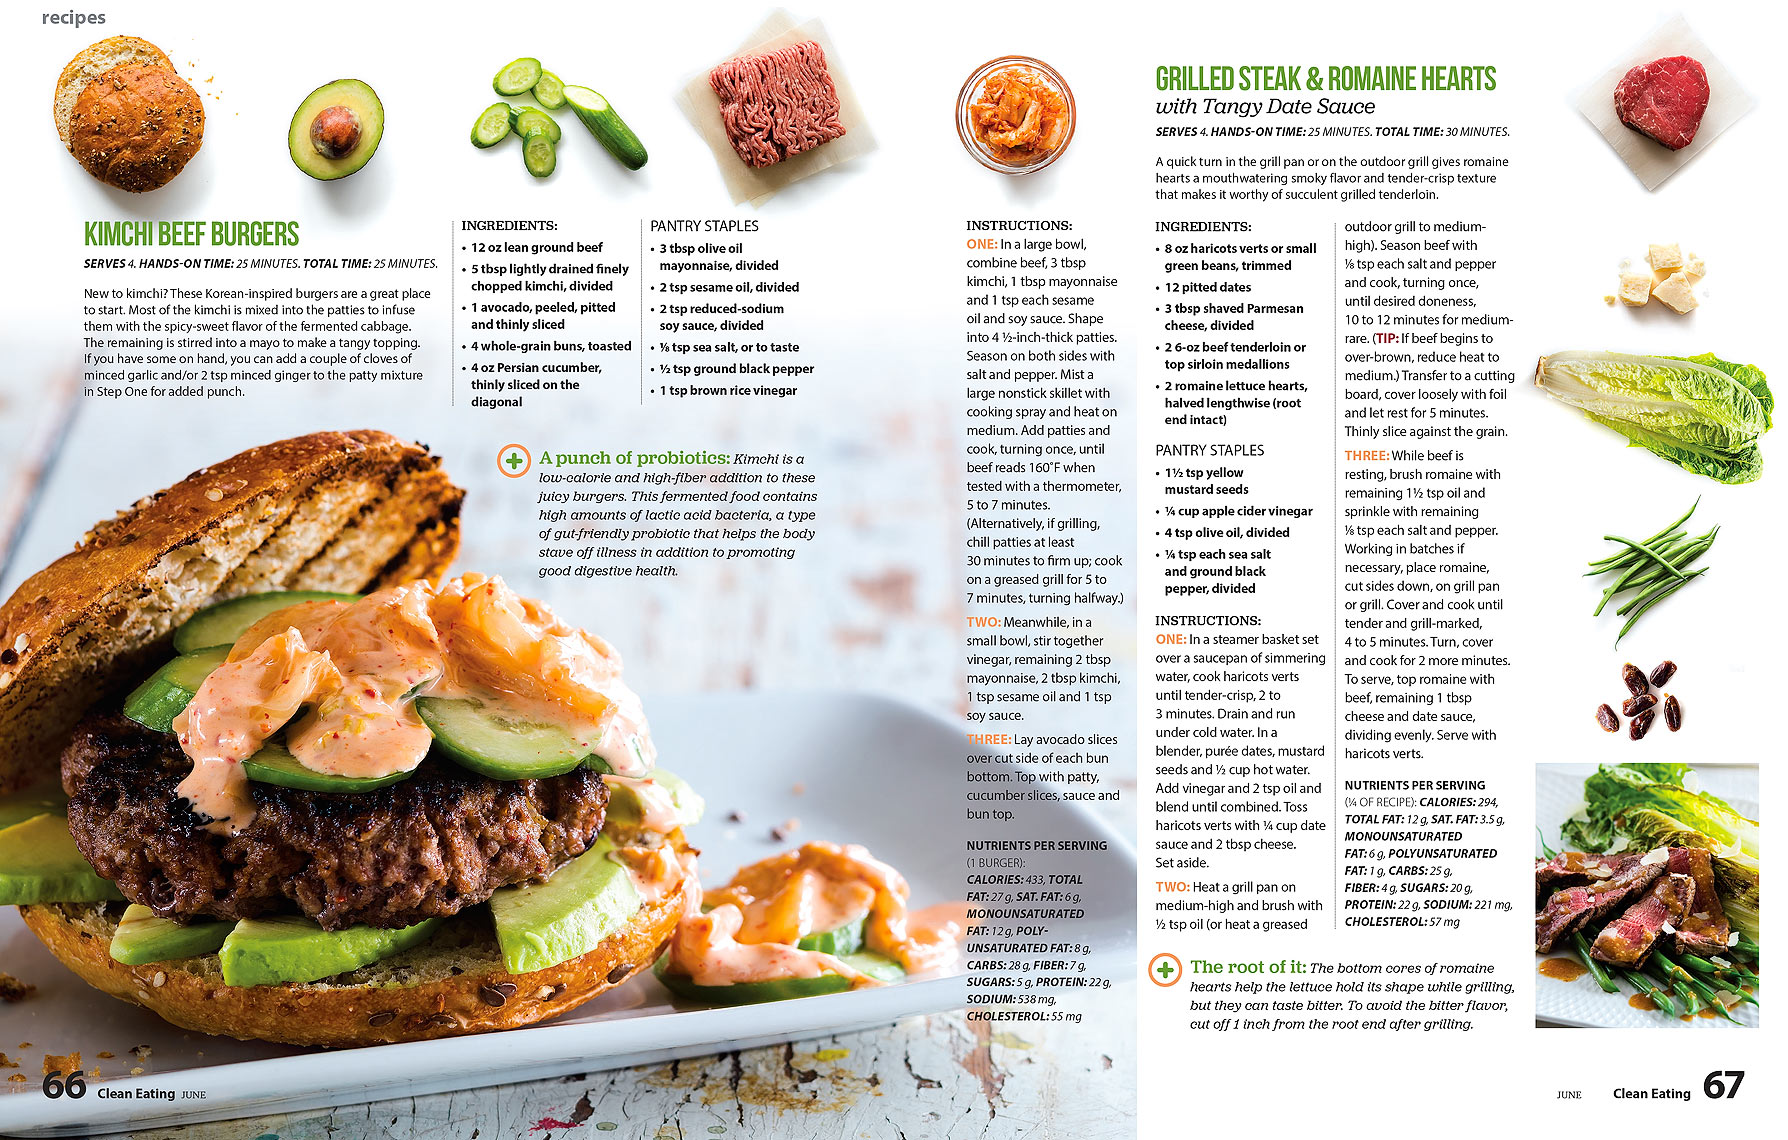 Clean_Eating_Magazine_Burger